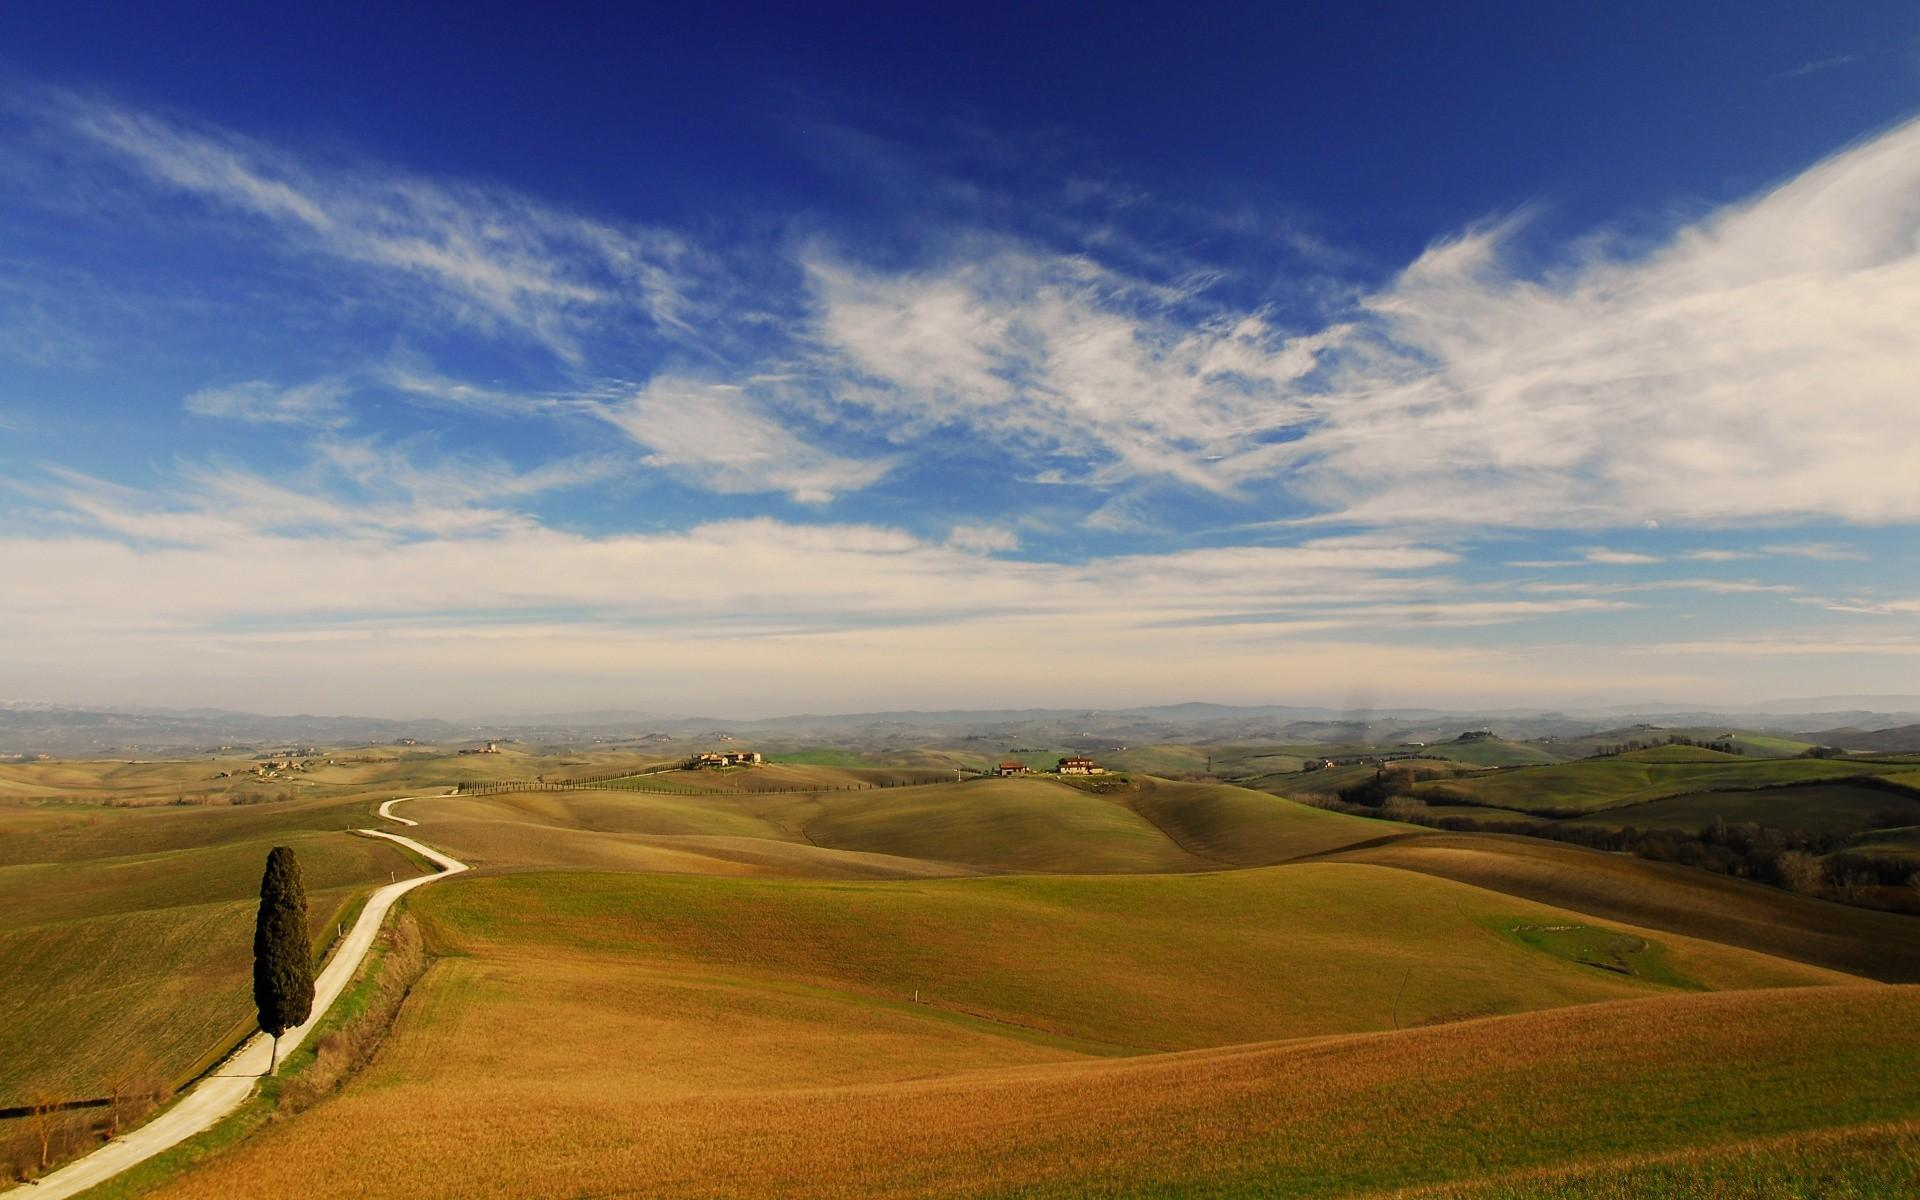 Tuscany Landscape. Desktop wallpapers for free.